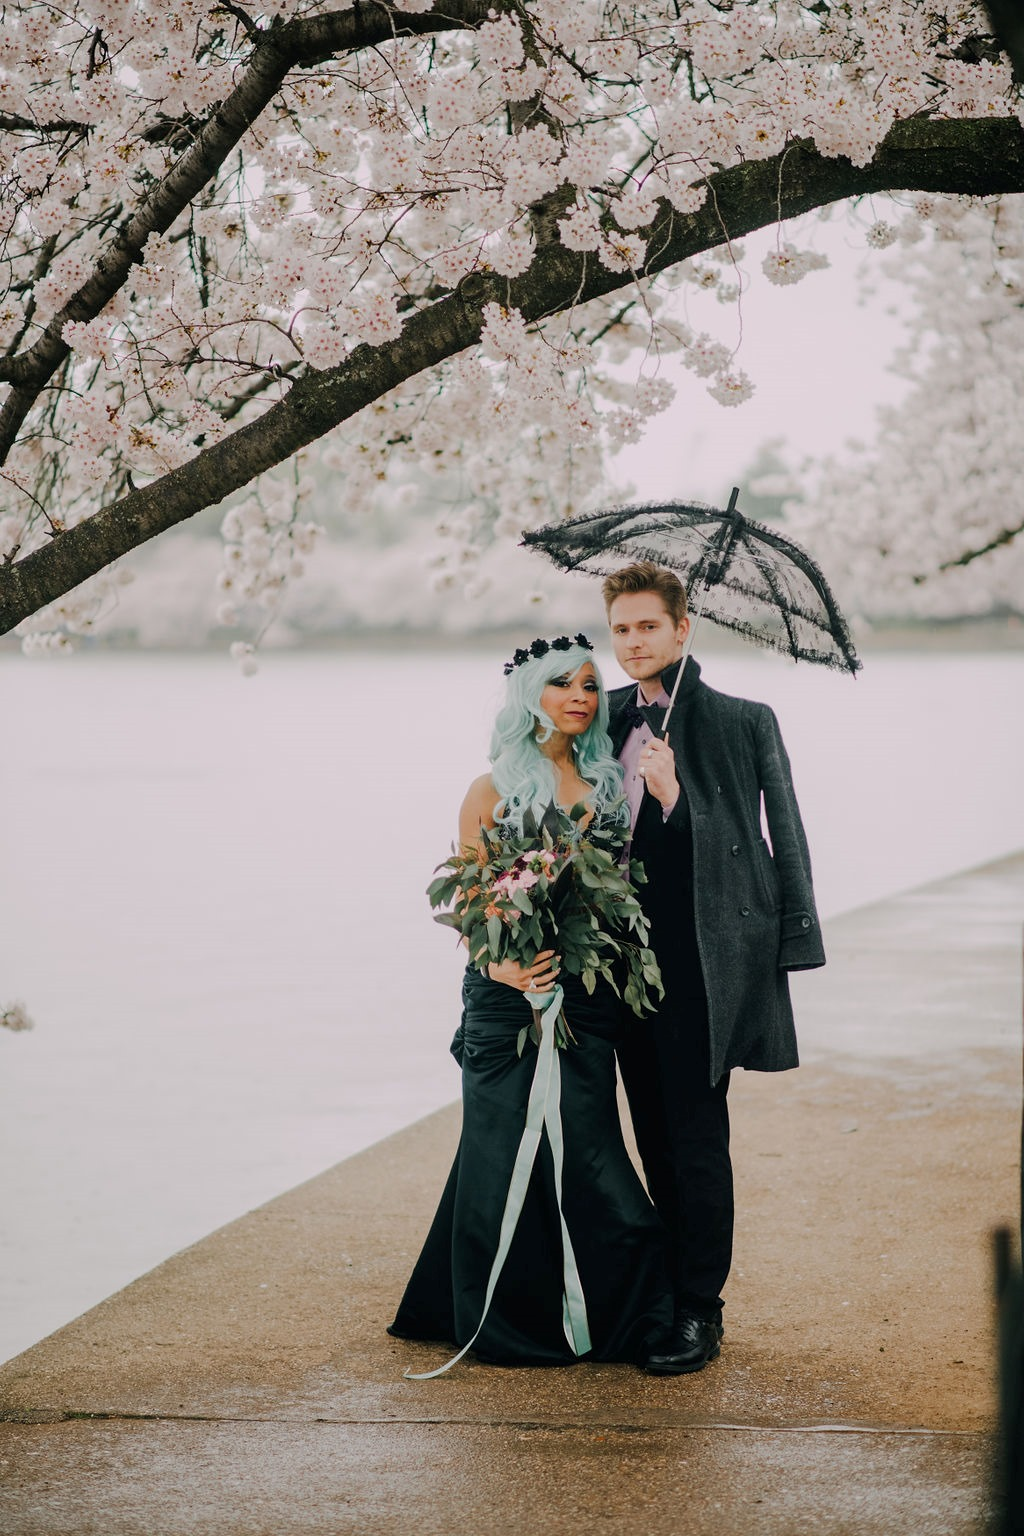 There is something about having an off beat wedding! Different seasons can add a different flair. This couple chose to marry in the